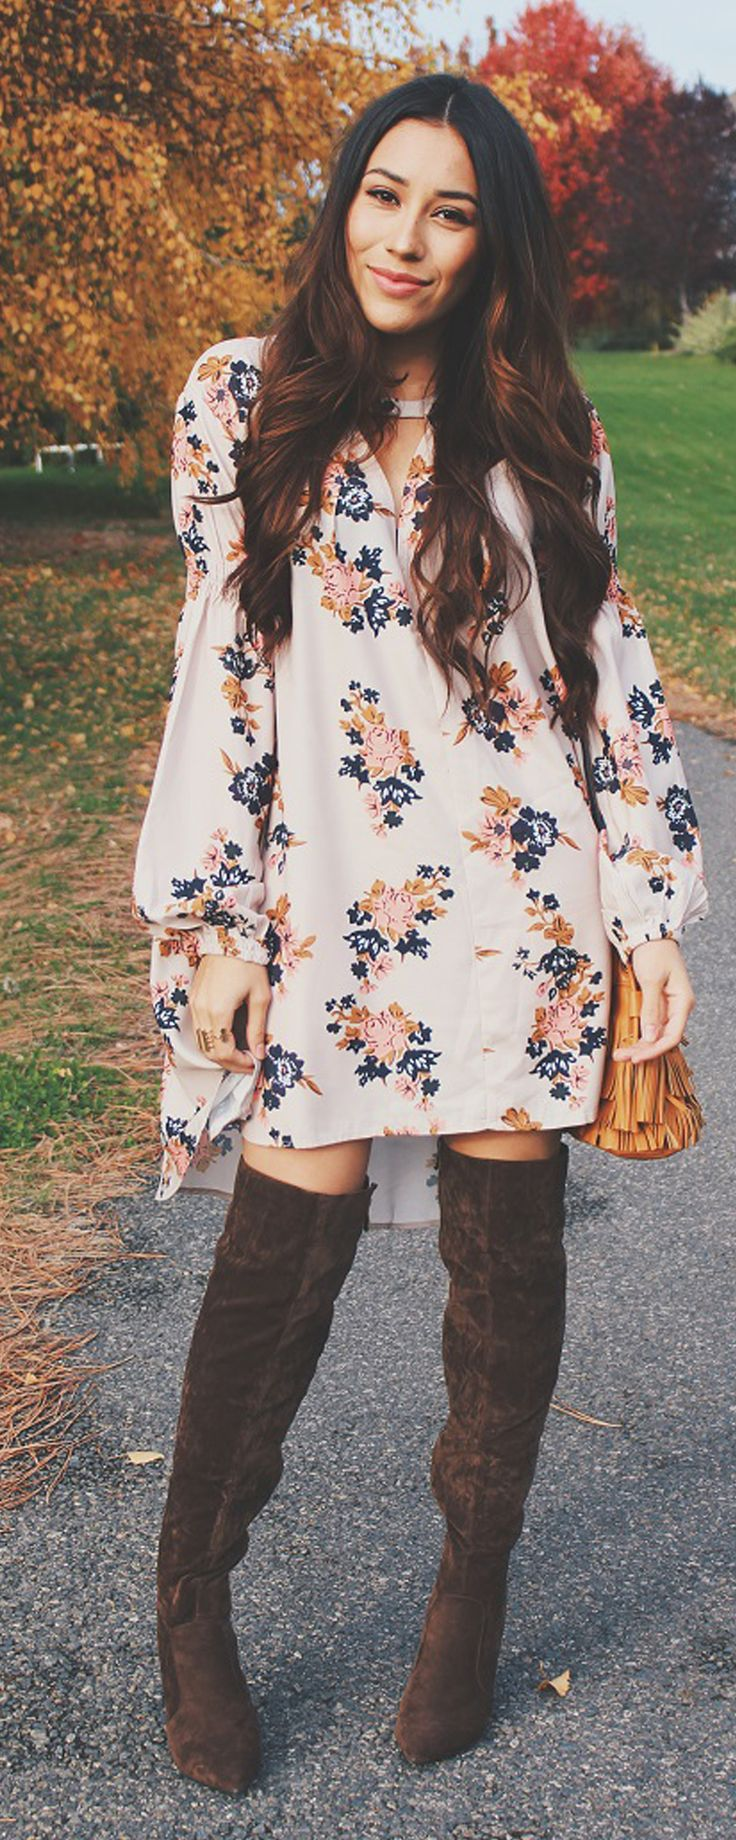 Wear a floral short dress, and try pairing with boots like so for a very lovely, boho vibe.Find more color for it at shein..com .40% Off Your 1st Order! Free Shipping with 100% Quality Guarantee!